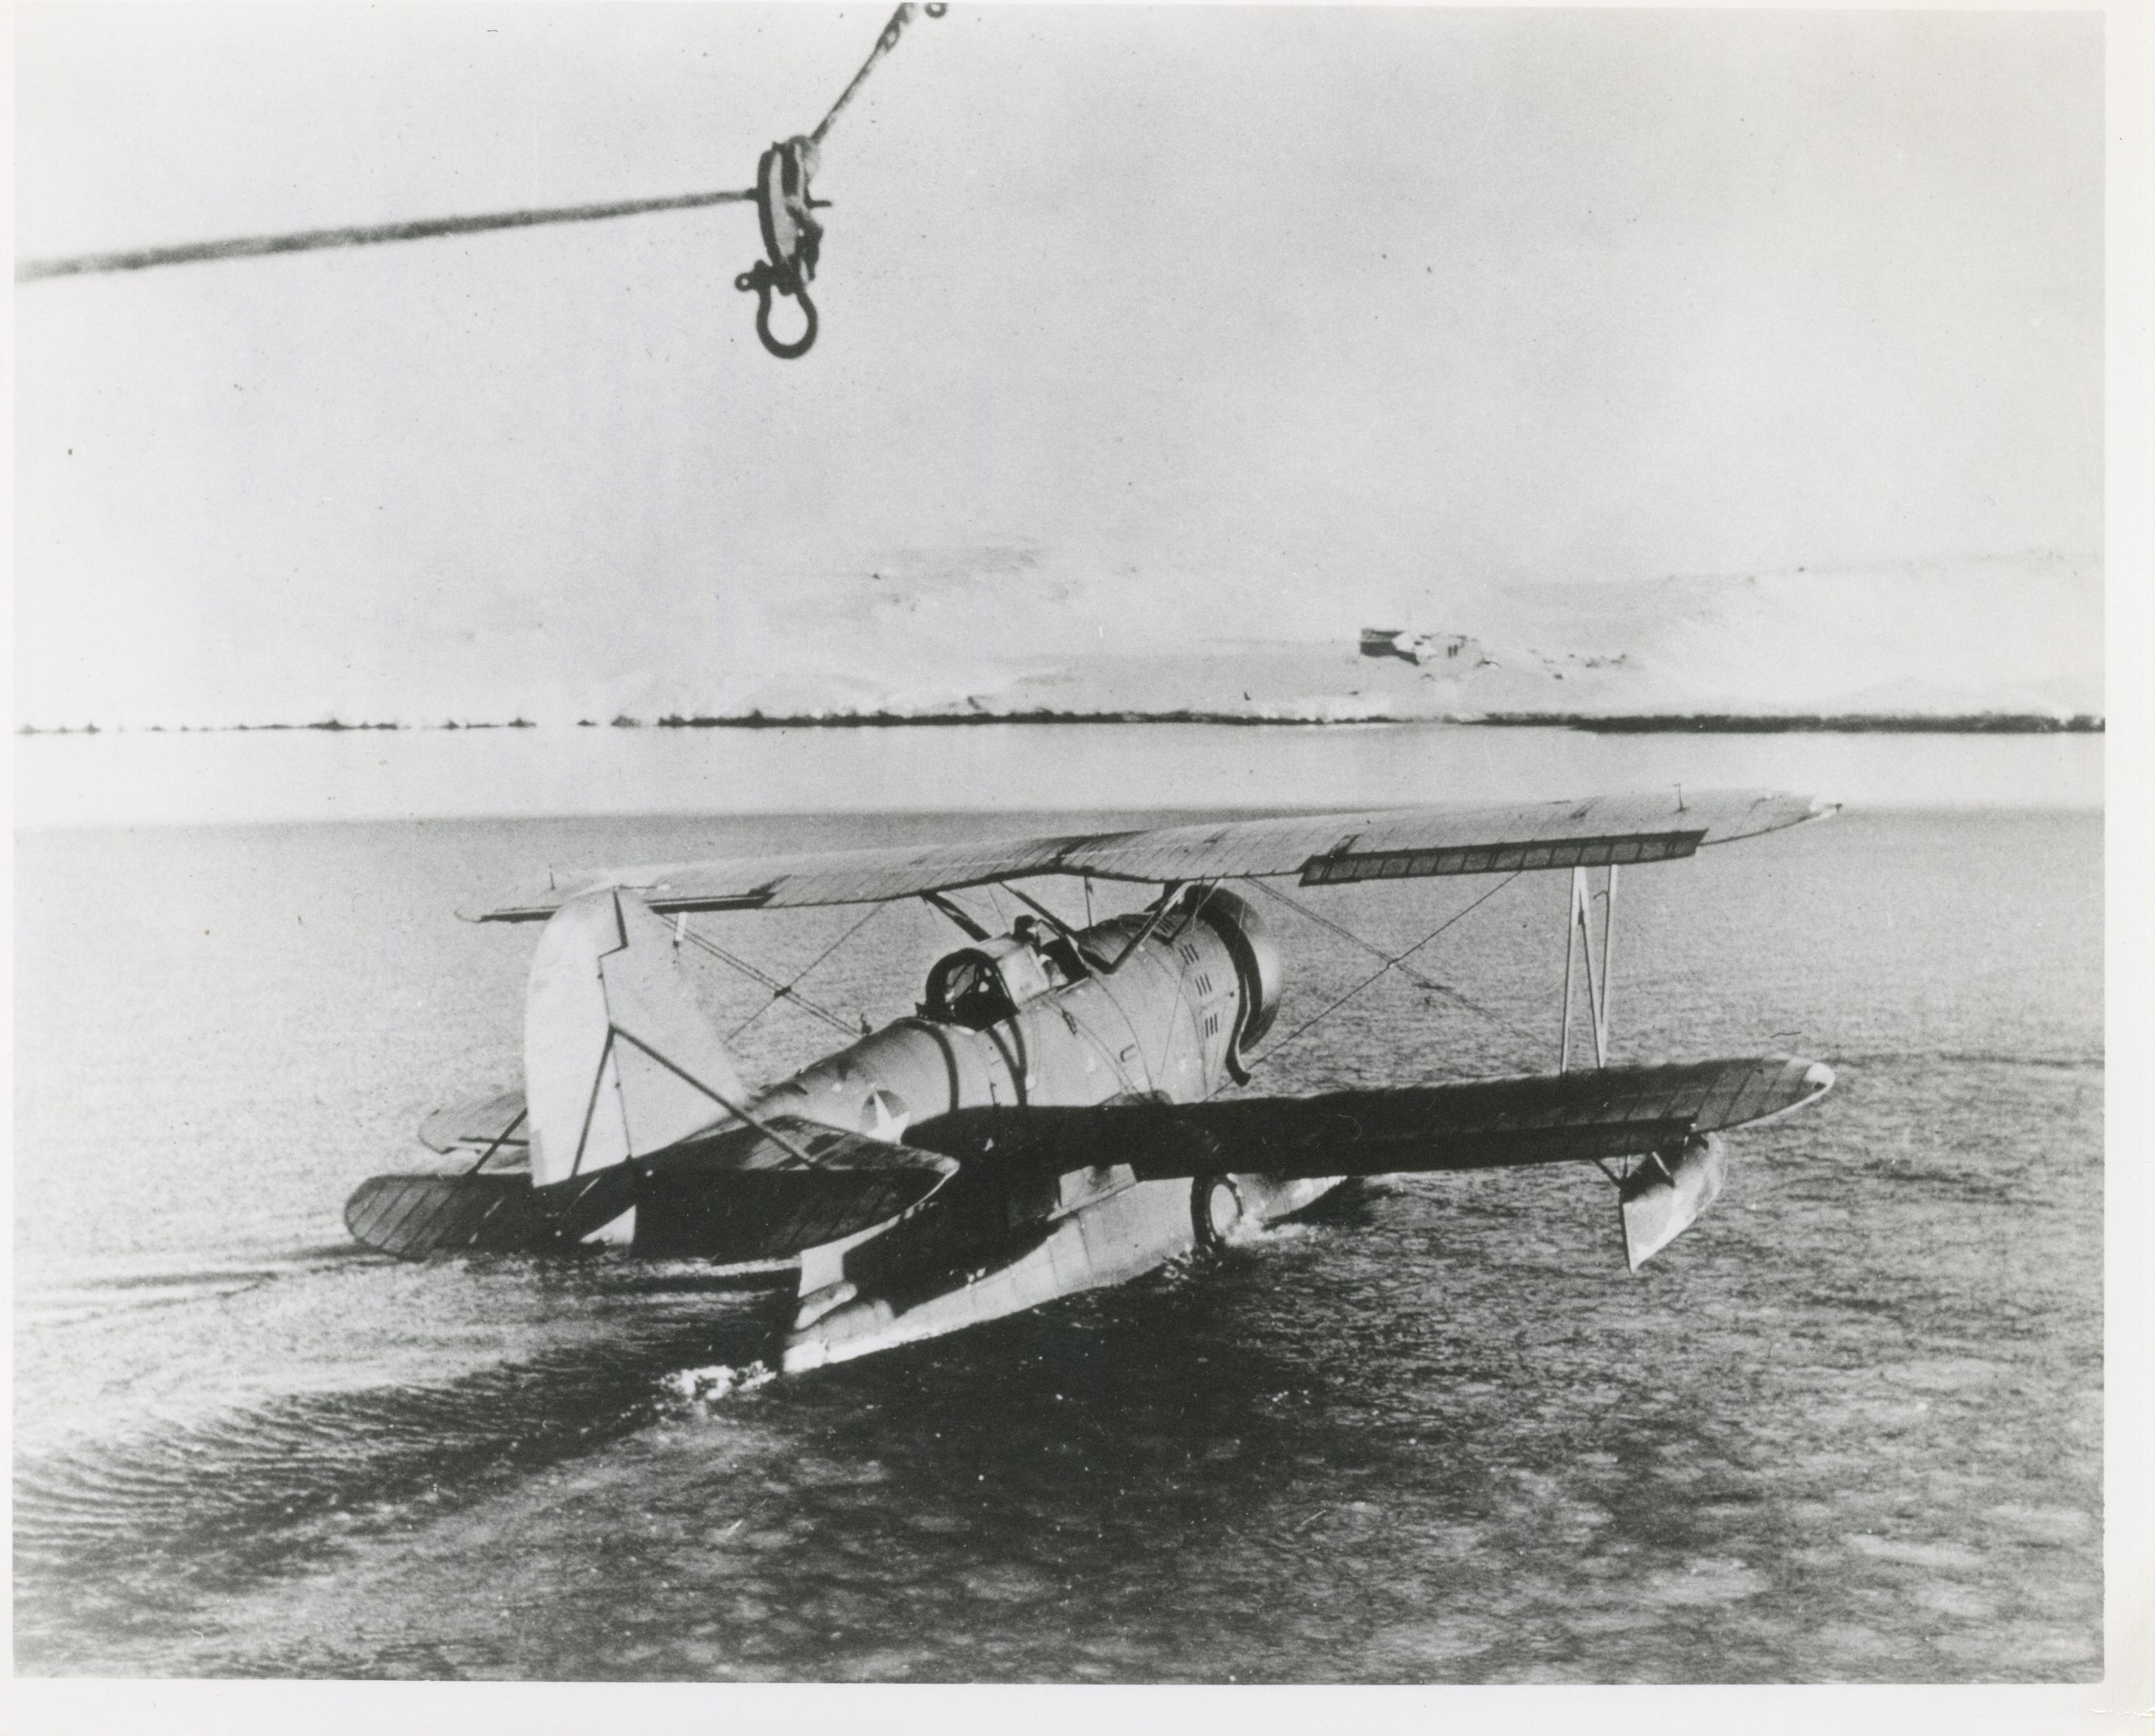 "Original caption: ""THE TAKE OFF: The Coast Guard amphibian plane (J2F) has been put over the side, and Lieutenant John A. Pritchard, Jr. and Radioman Benjamin A. Bottoms, ready for the take-off, scan the Greenland icebergs over which they have spent so many hours of hazardous flying in their single-engine plane.  They successfully rescued two of the U.S. Army fliers and met their death in an attempt to rescue the [sic] third flier."" (photo credit: USCG Archives)"